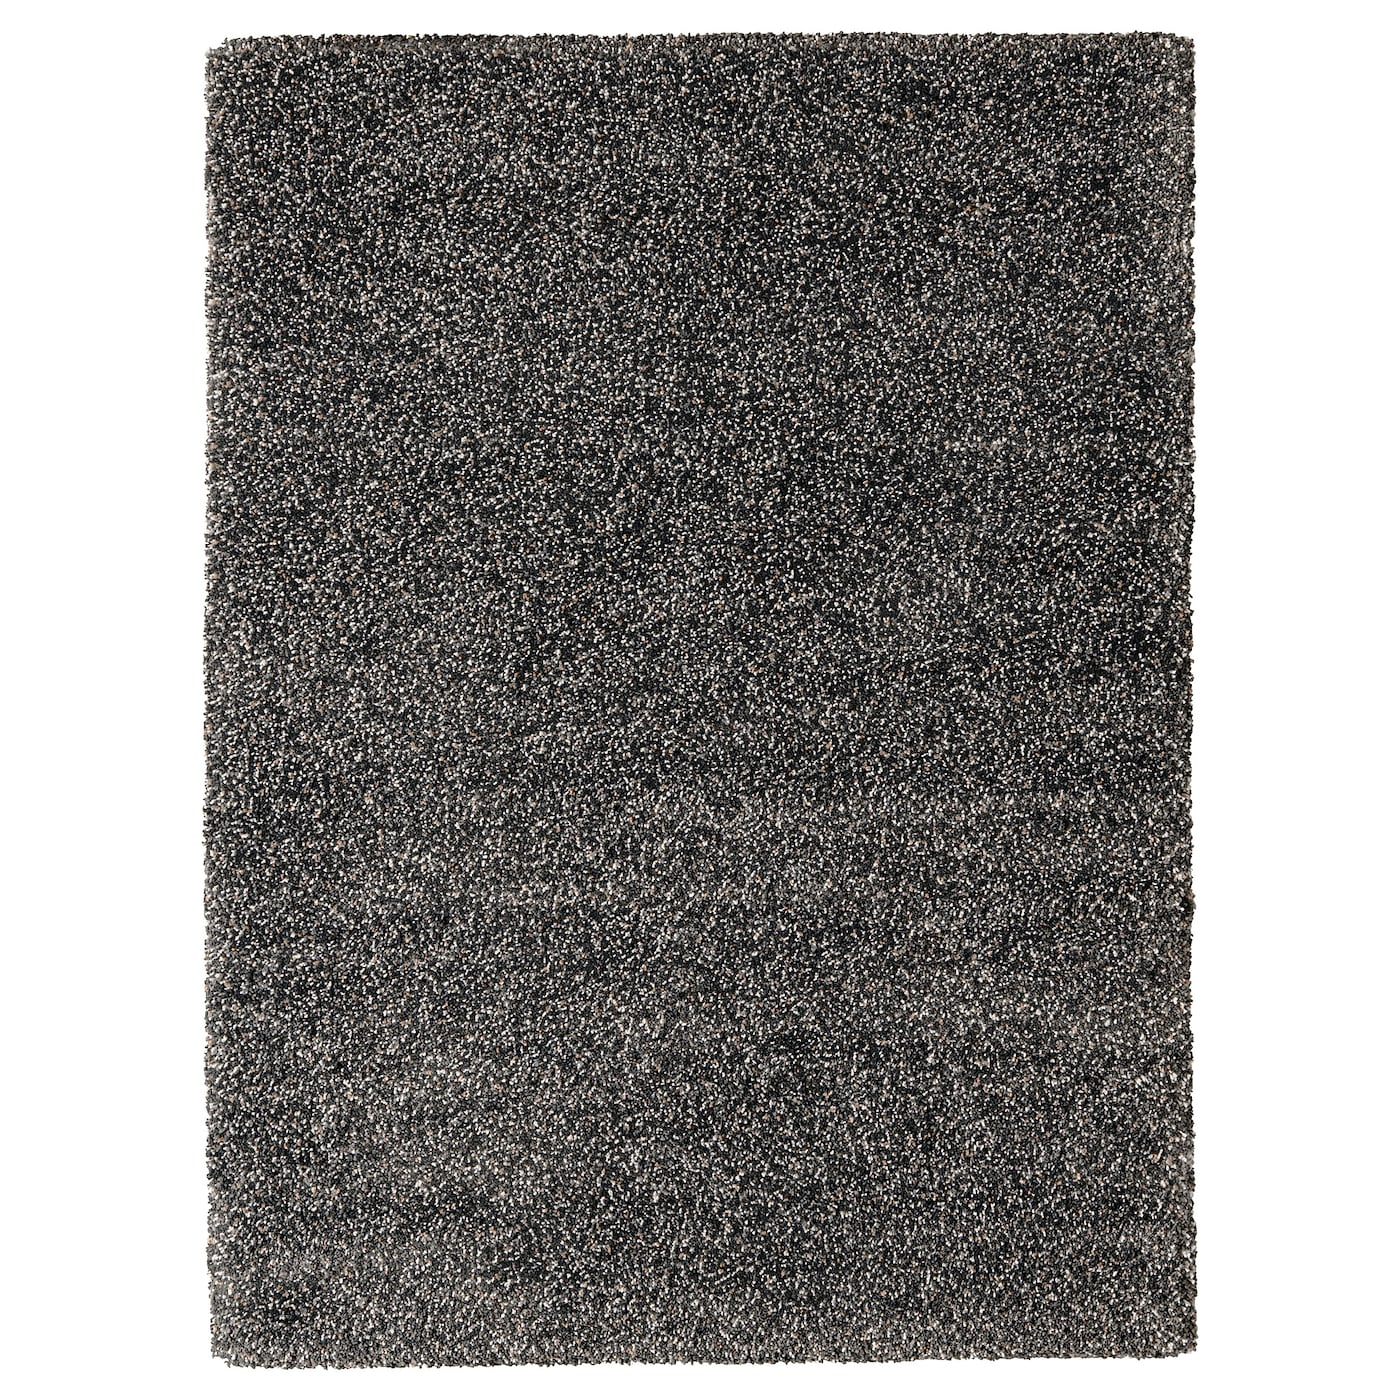 IKEA VINDUM rug, high pile The high pile makes it easy to join several rugs, without a visible seam.